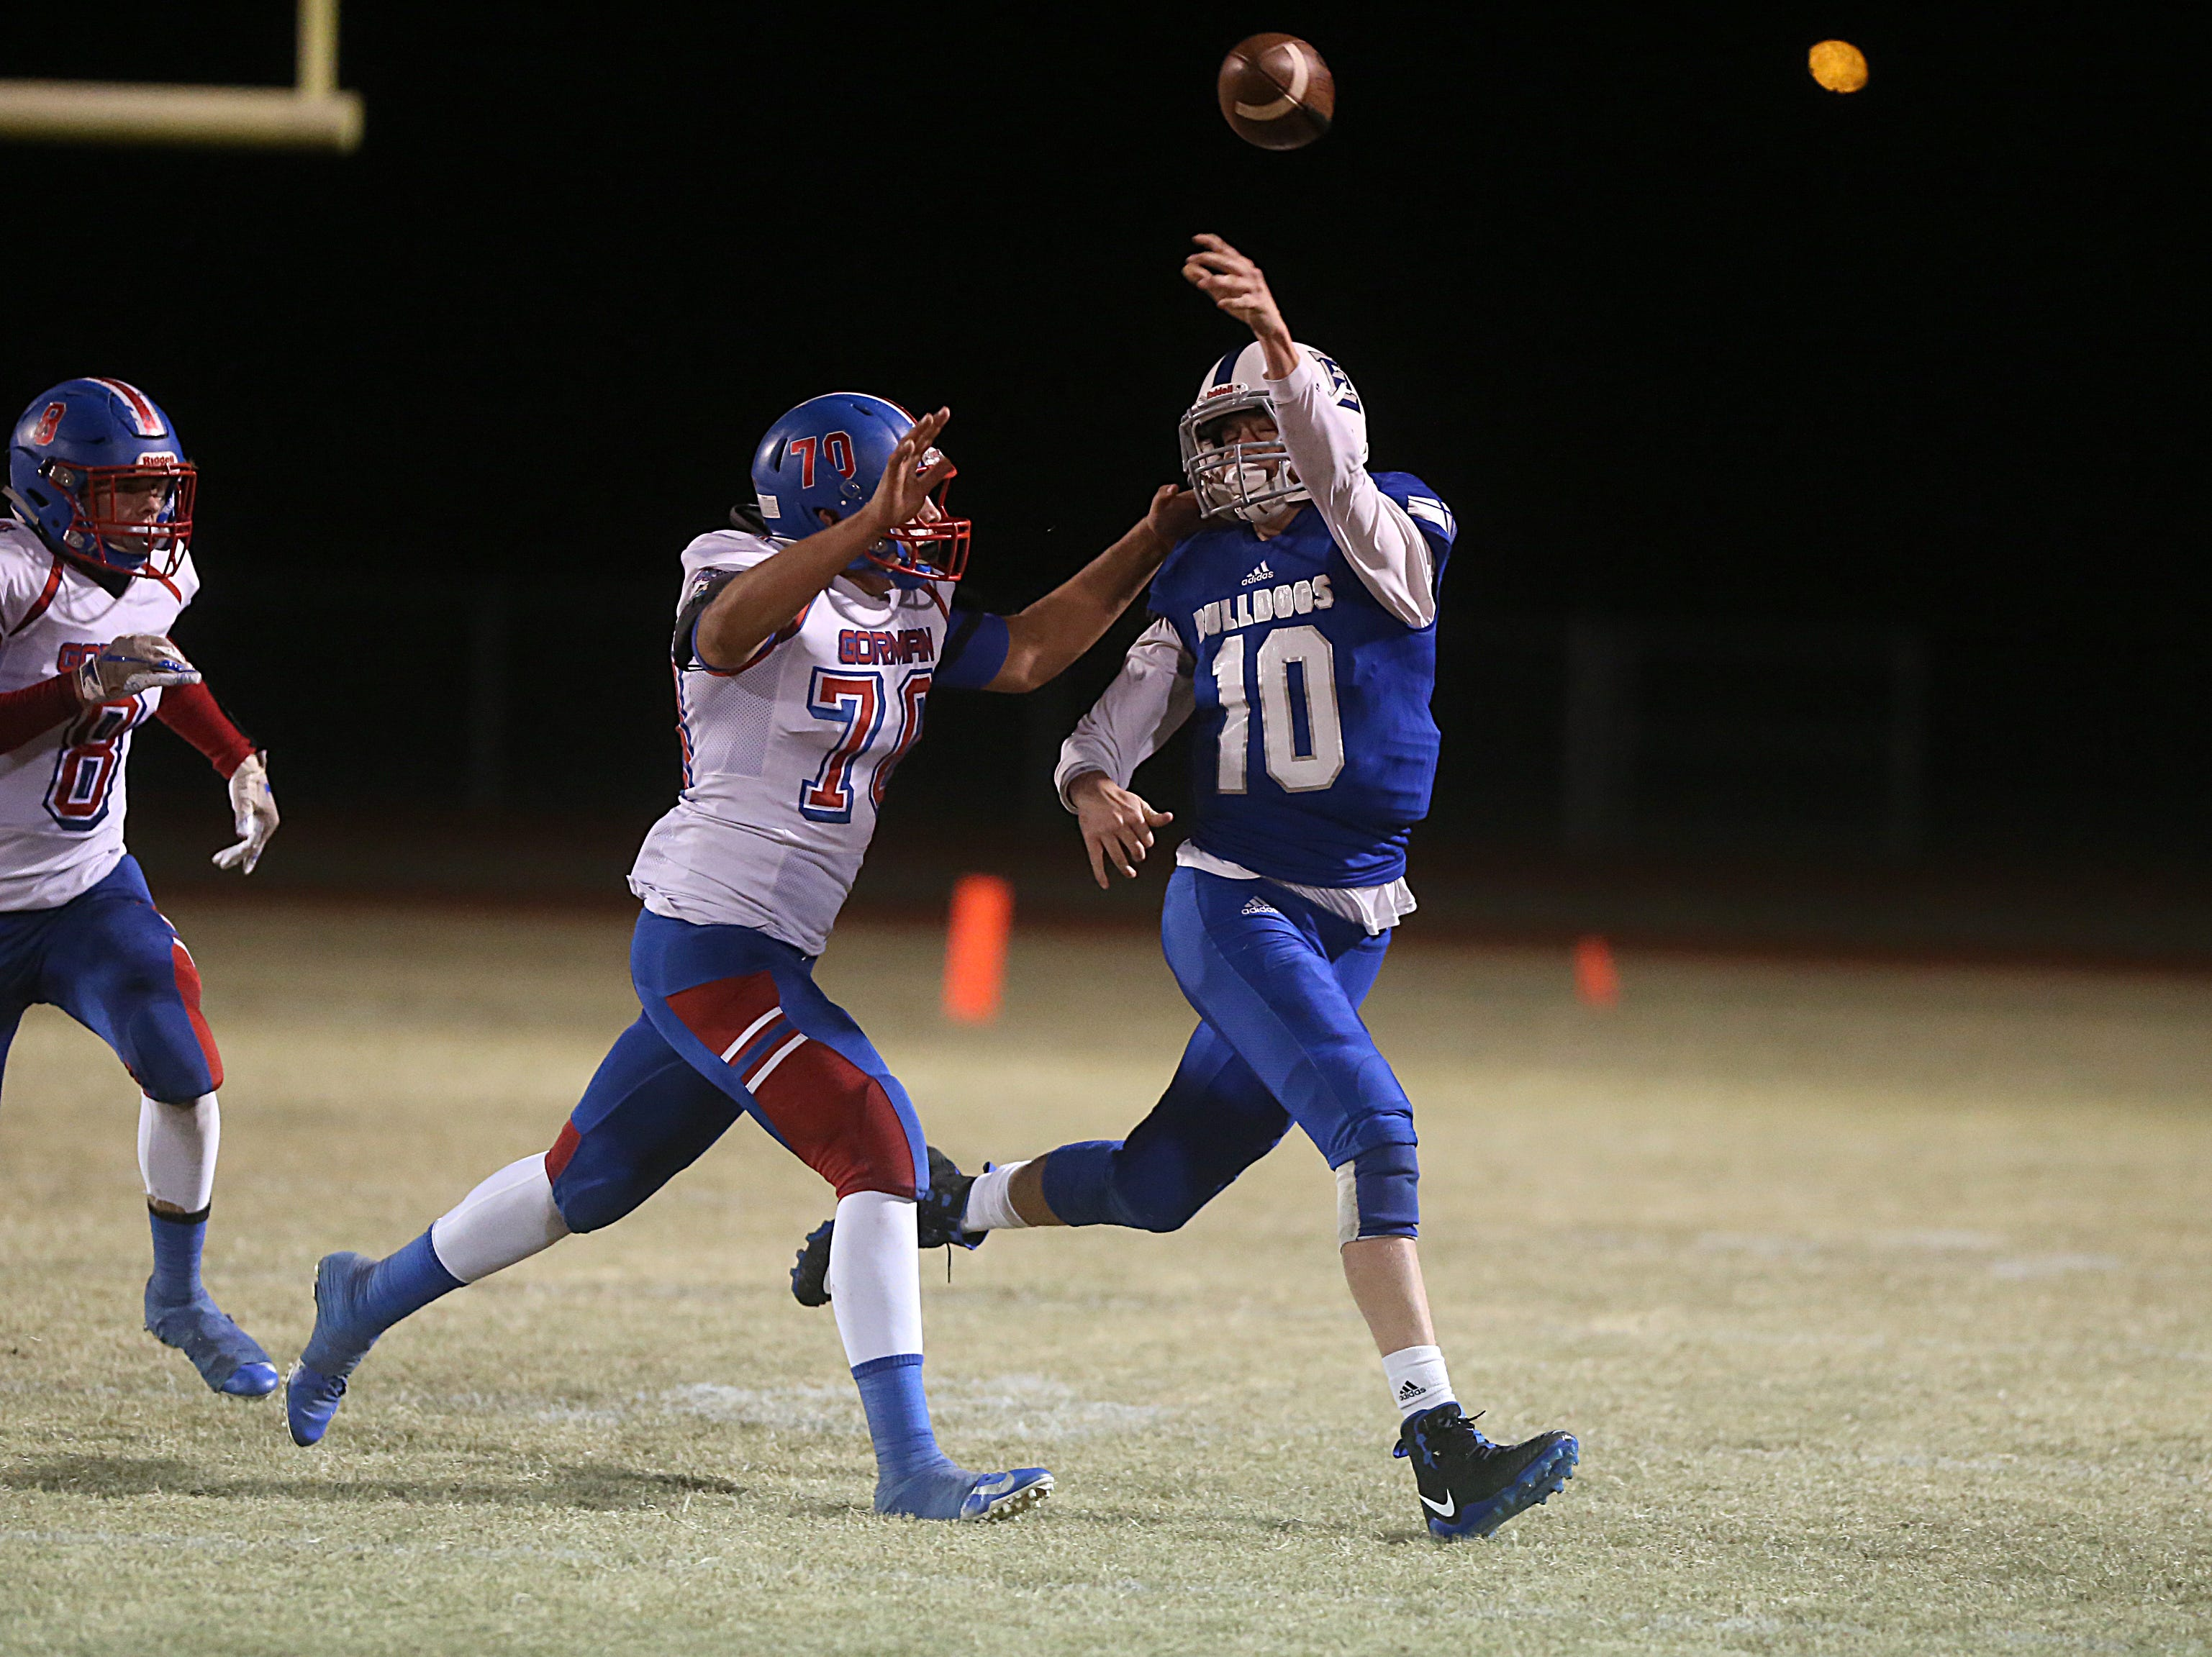 Eden's Hunner Rodgers (#10) throws a last minute pass as Gorman's Cesar Montelongo (#70) attempts to tackle him Friday, Nov. 16, 2018 during their game in Santa Anna. Eden lost to Gorman 20 to 68.